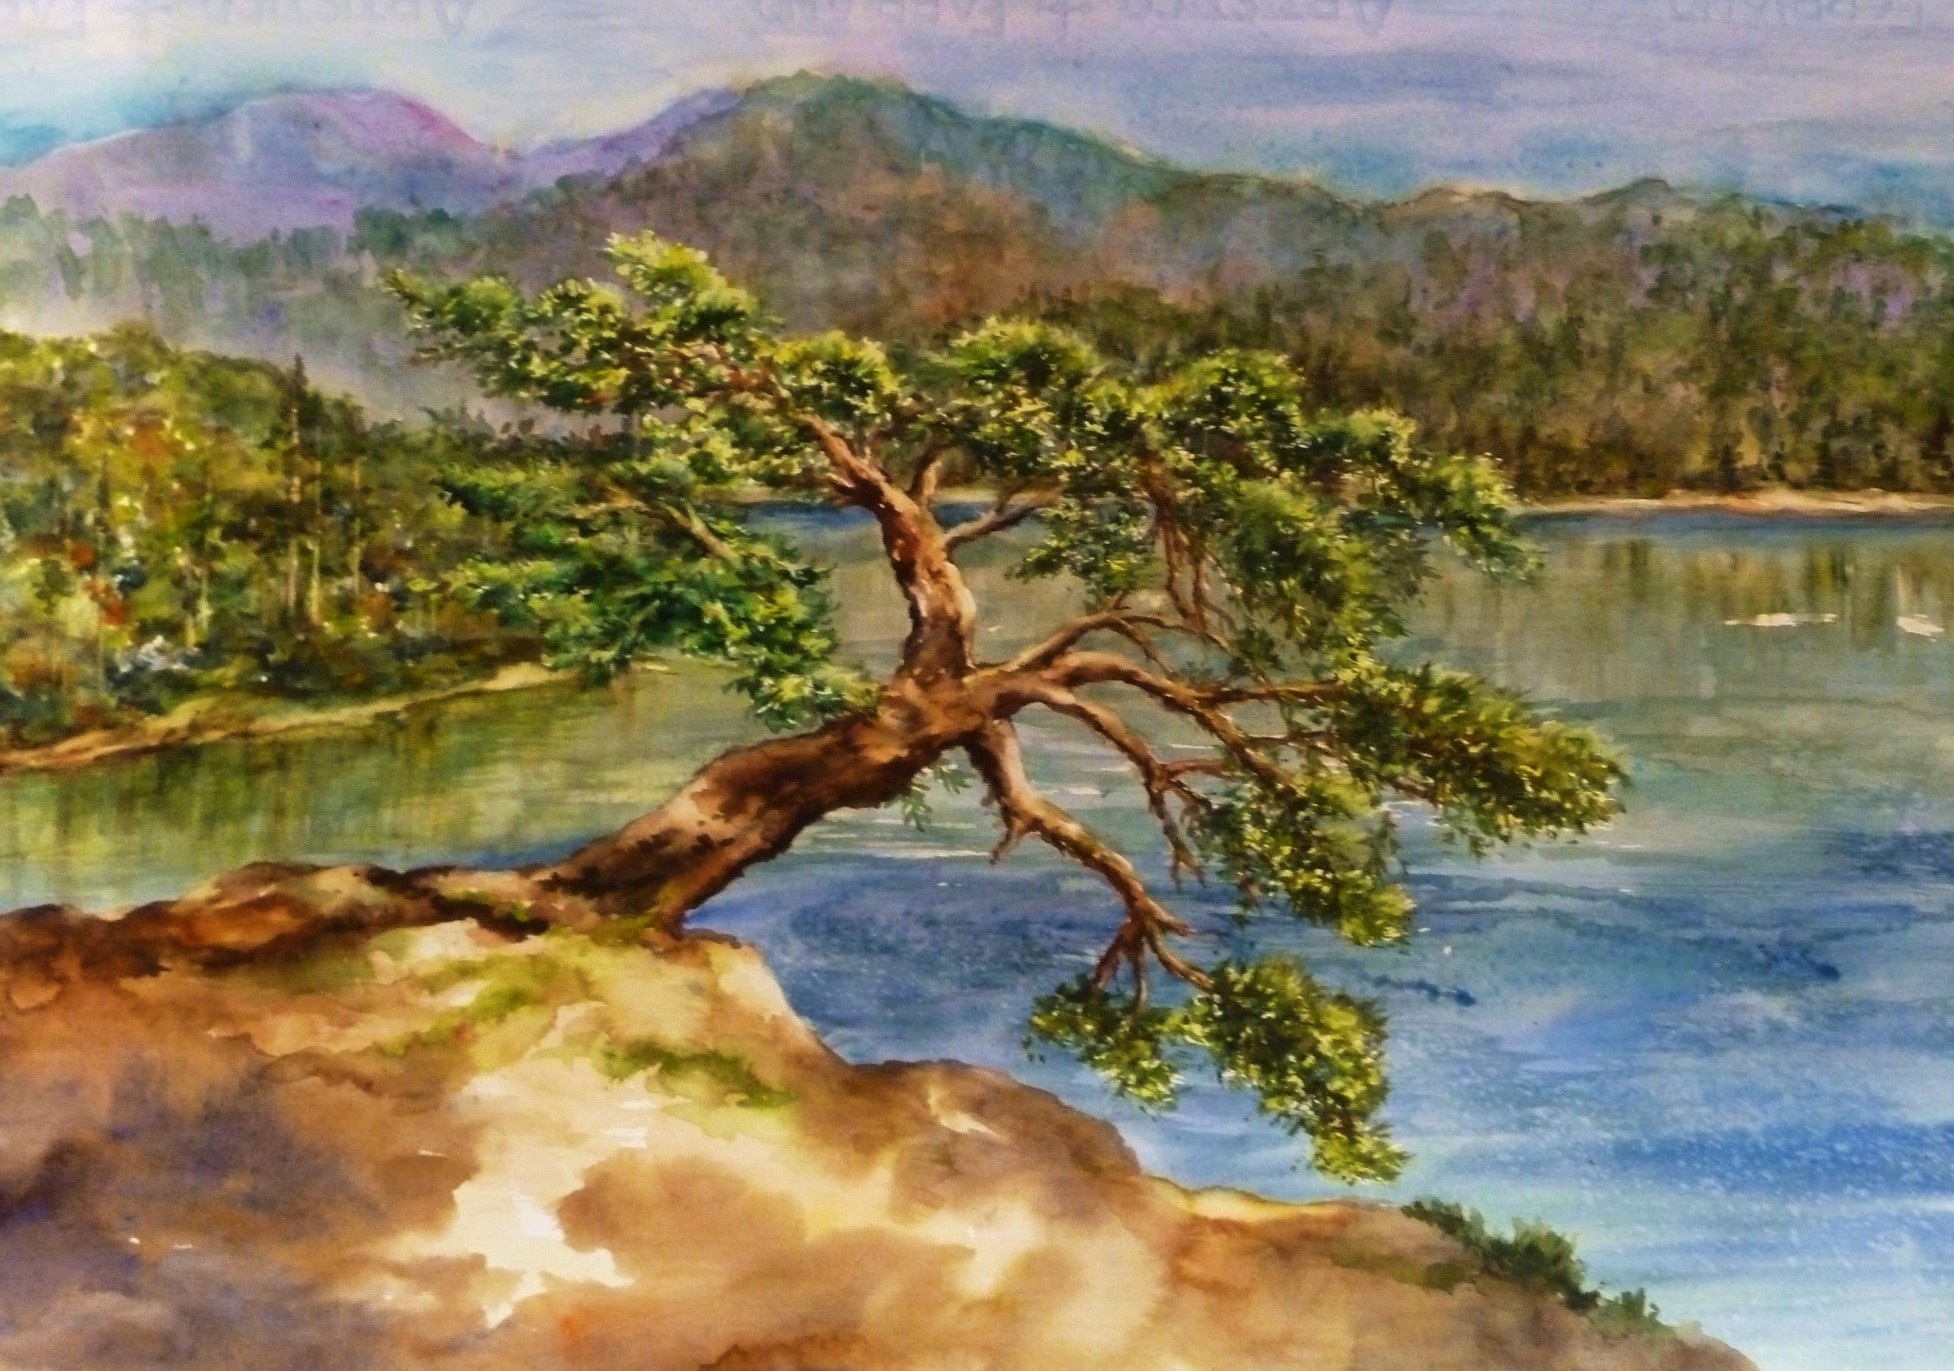 The Jumping Tree 14x22by Denise Cole.JPG